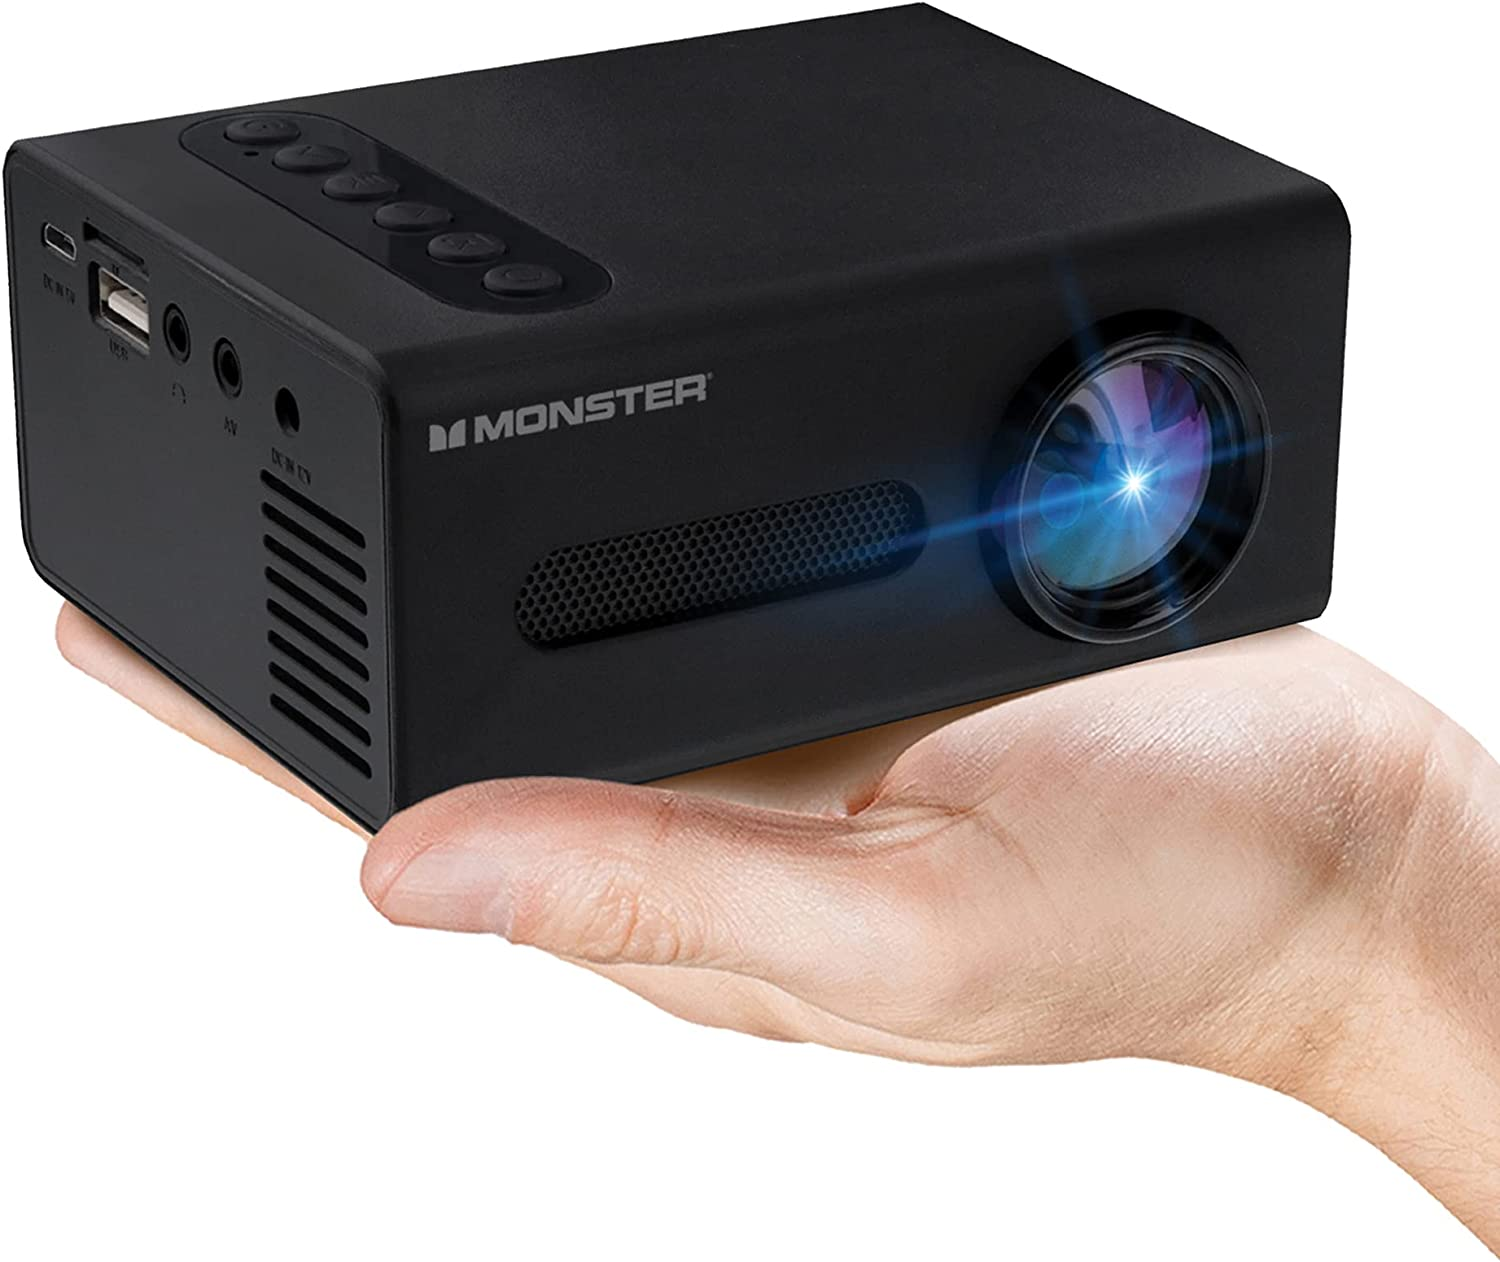 Monster Image Mini Small Format LCD Projector 1920x1080 HD Quality, Project Up to 8 Feet Away, Works On Projection Screens Ranging from 20-80 Inches. Supports Any Format with Universal HDMI Cable